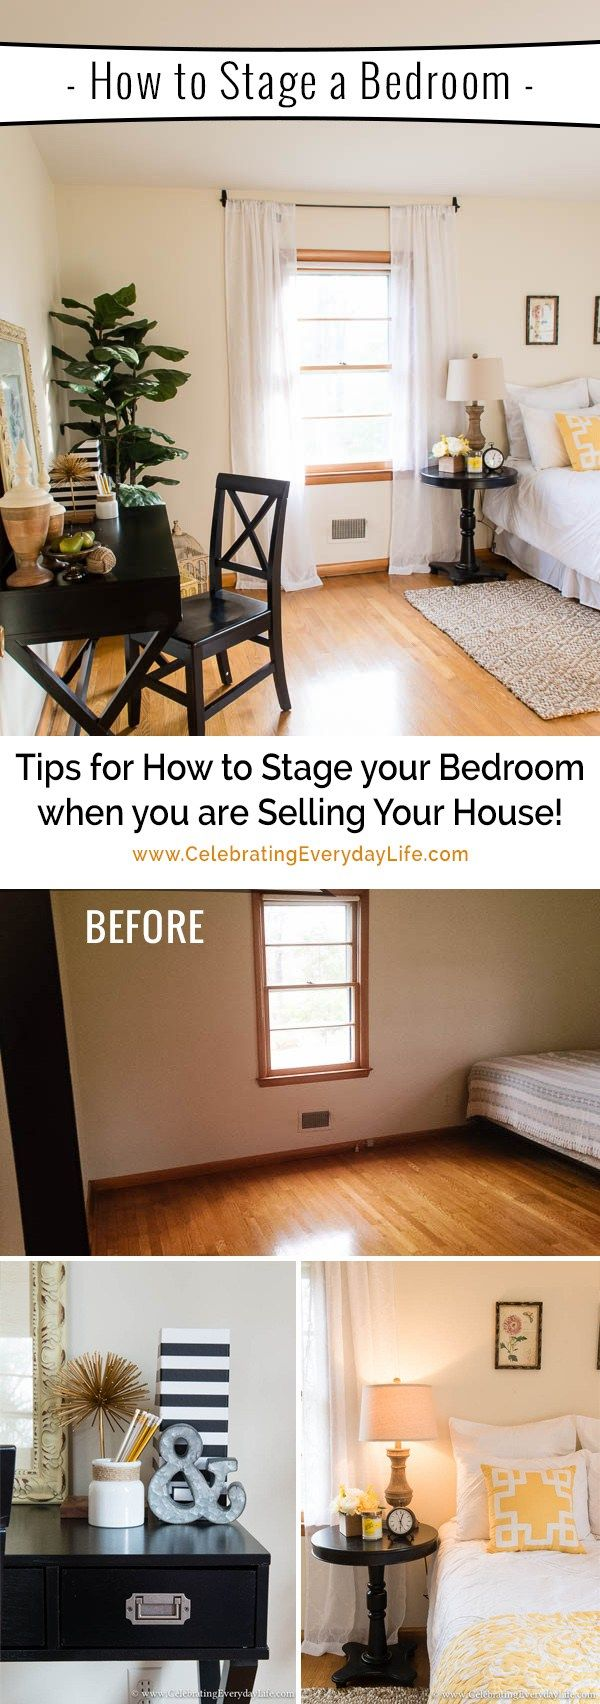 More Tips for How to Stage a Bedroom to Sell NOW is part of home Staging Ideas - How to Stage a Bedroom to Sell! Read on for my proven tips to help you stage your home and make more money! This home sold in 1 day!